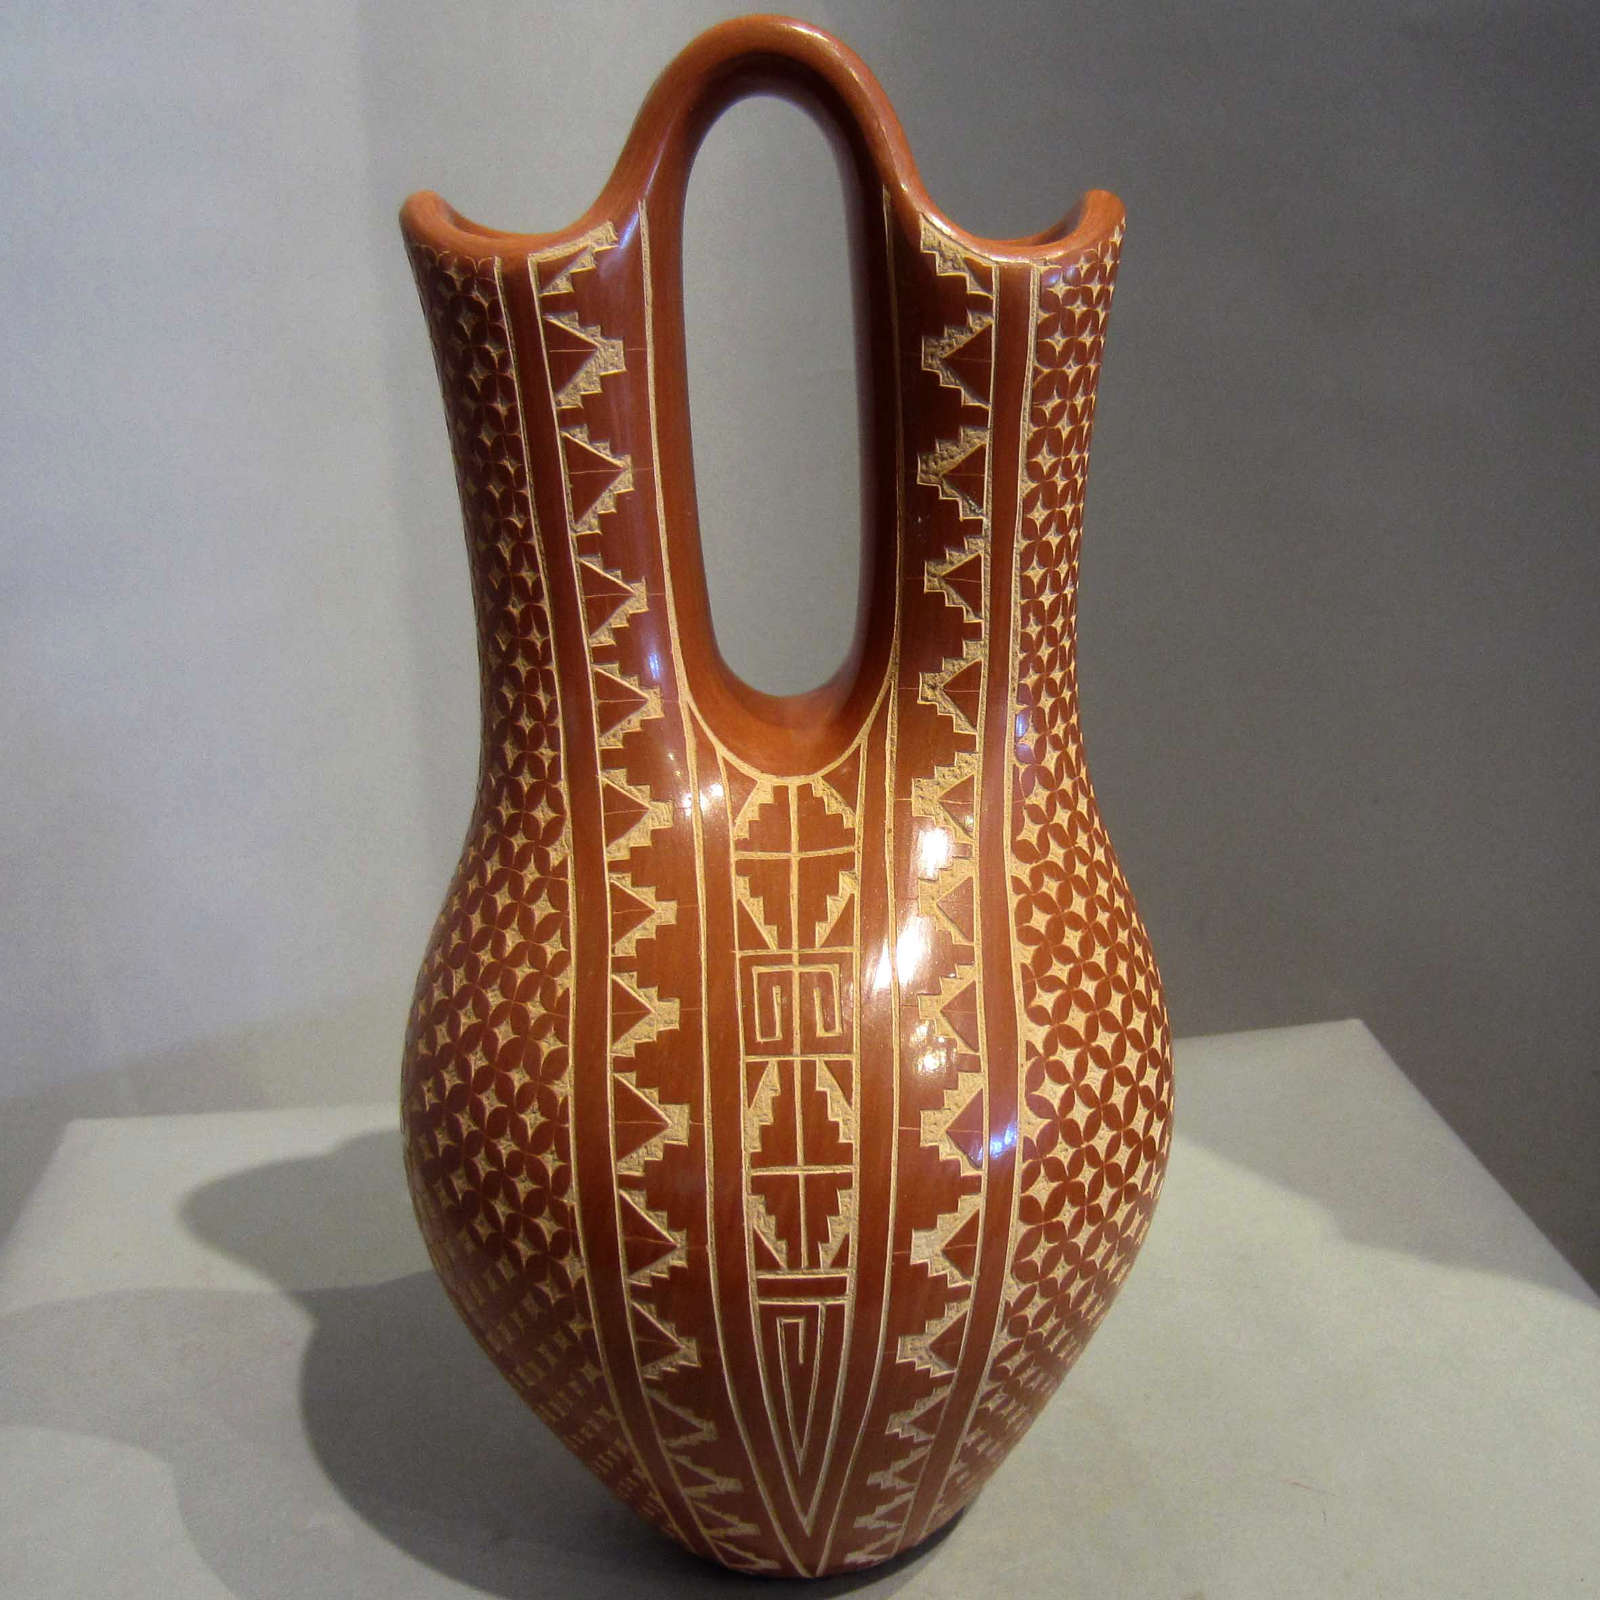 Wilma baca tosa wedding vases 1 jemez pueblo potters sgraffito geometric designs on a polished red wedding vase reviewsmspy